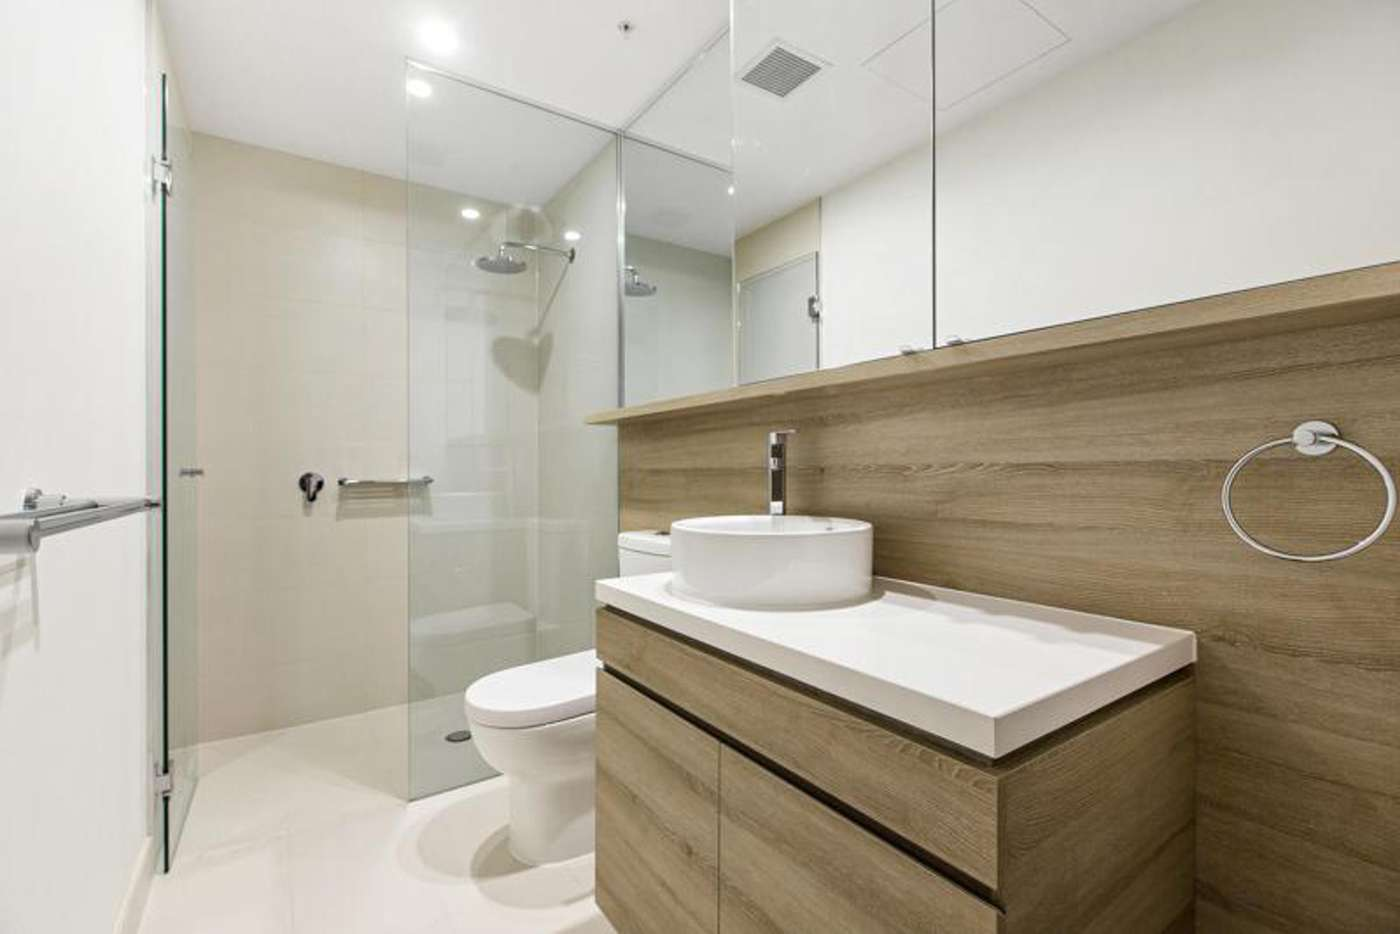 Seventh view of Homely apartment listing, 101/19-25 Nott Street, Port Melbourne VIC 3207